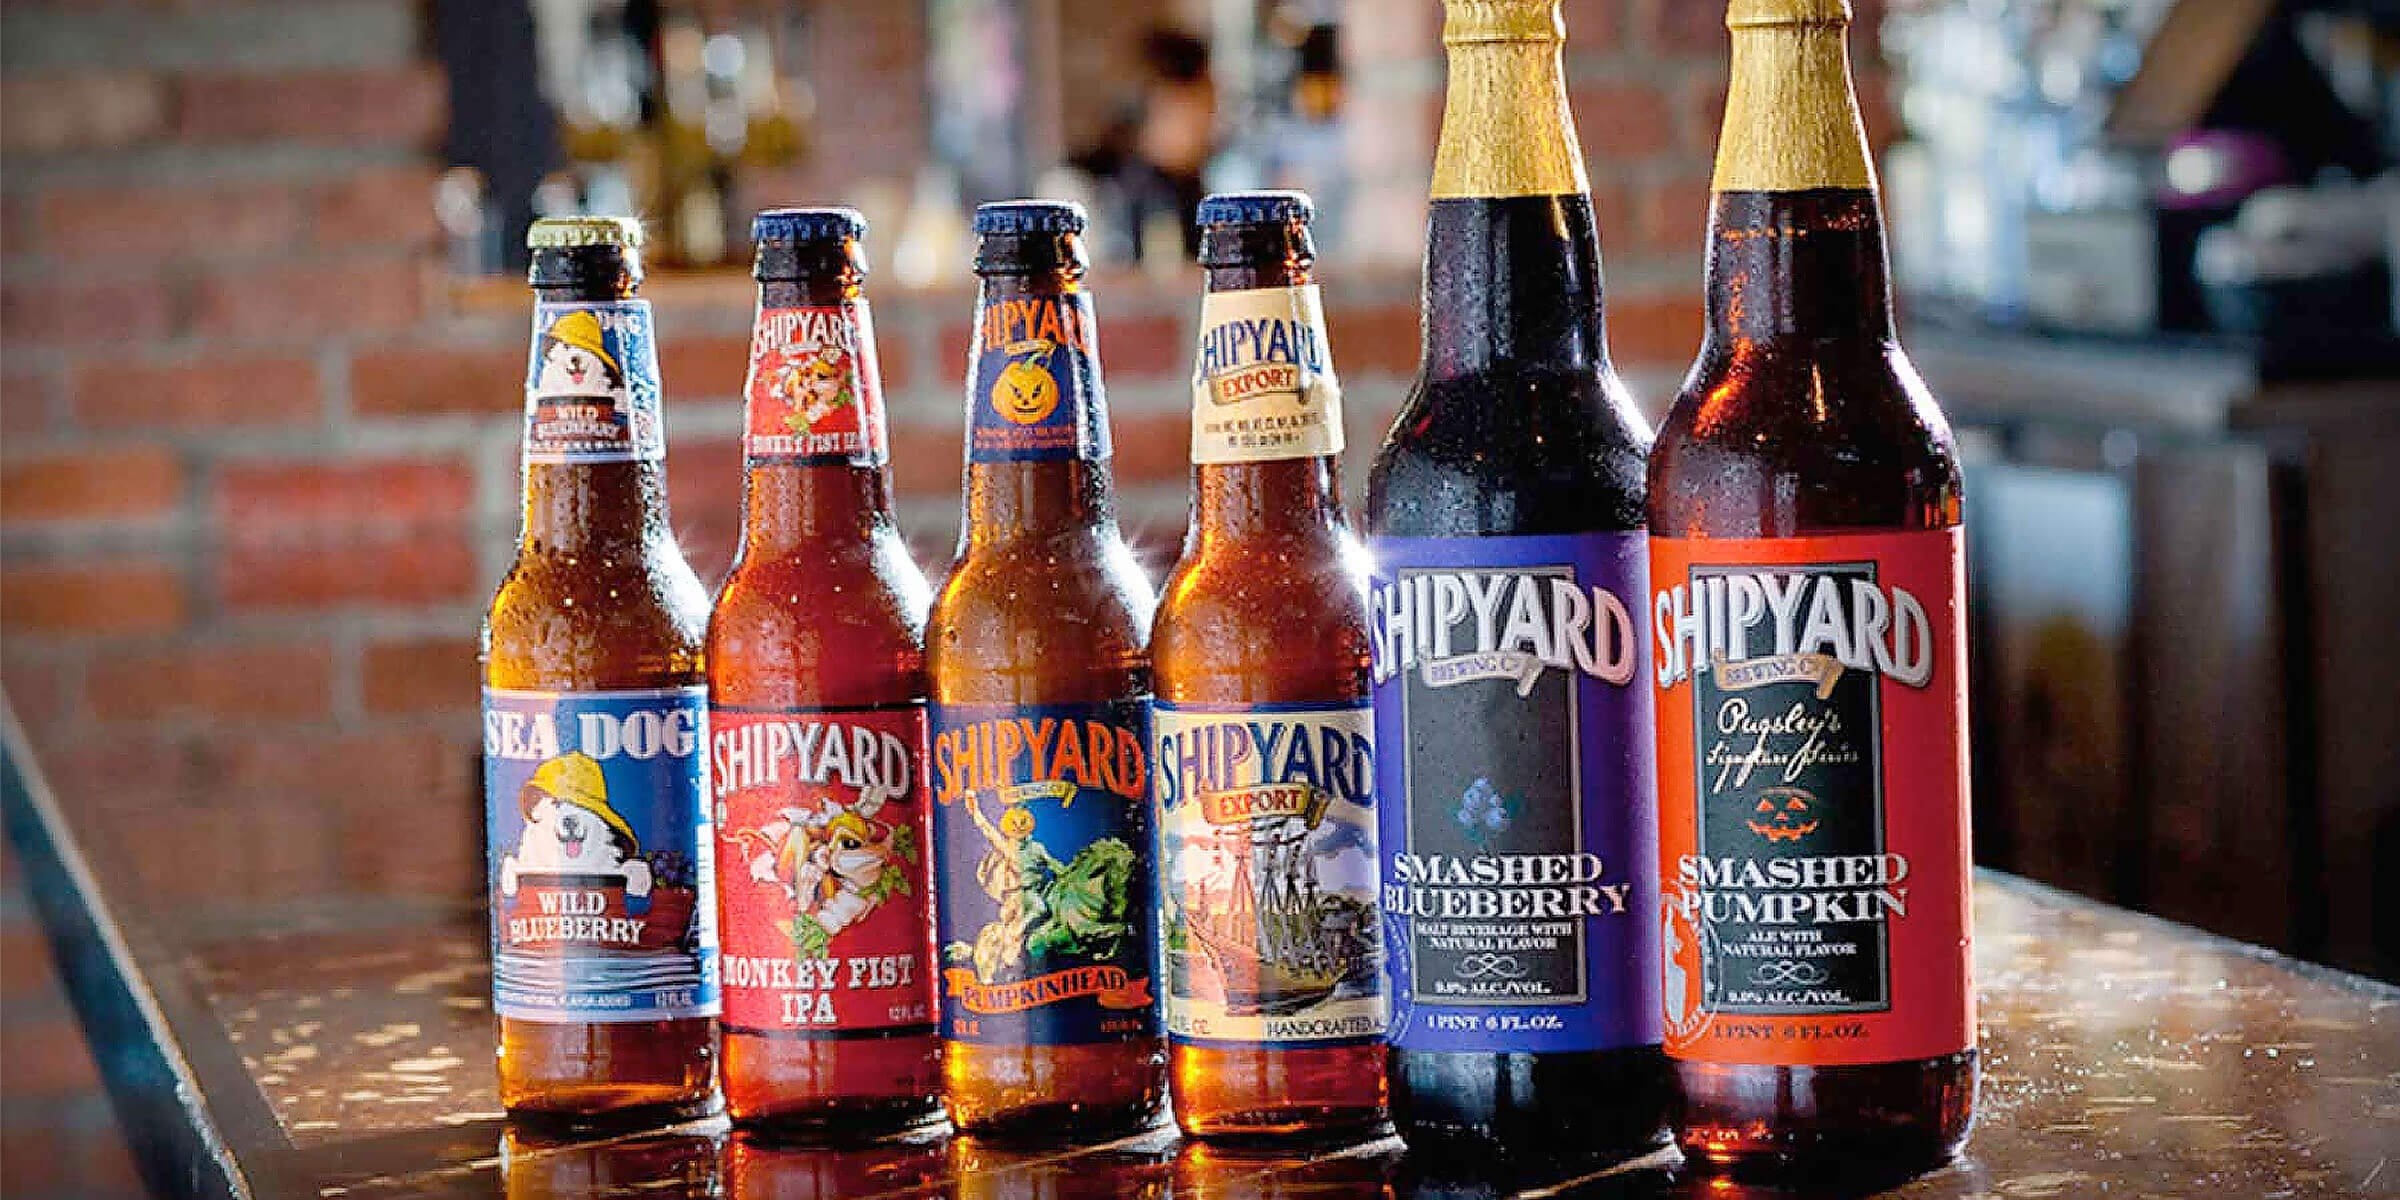 Lineup of bottled beers offered by Shipyard Brewing Co.